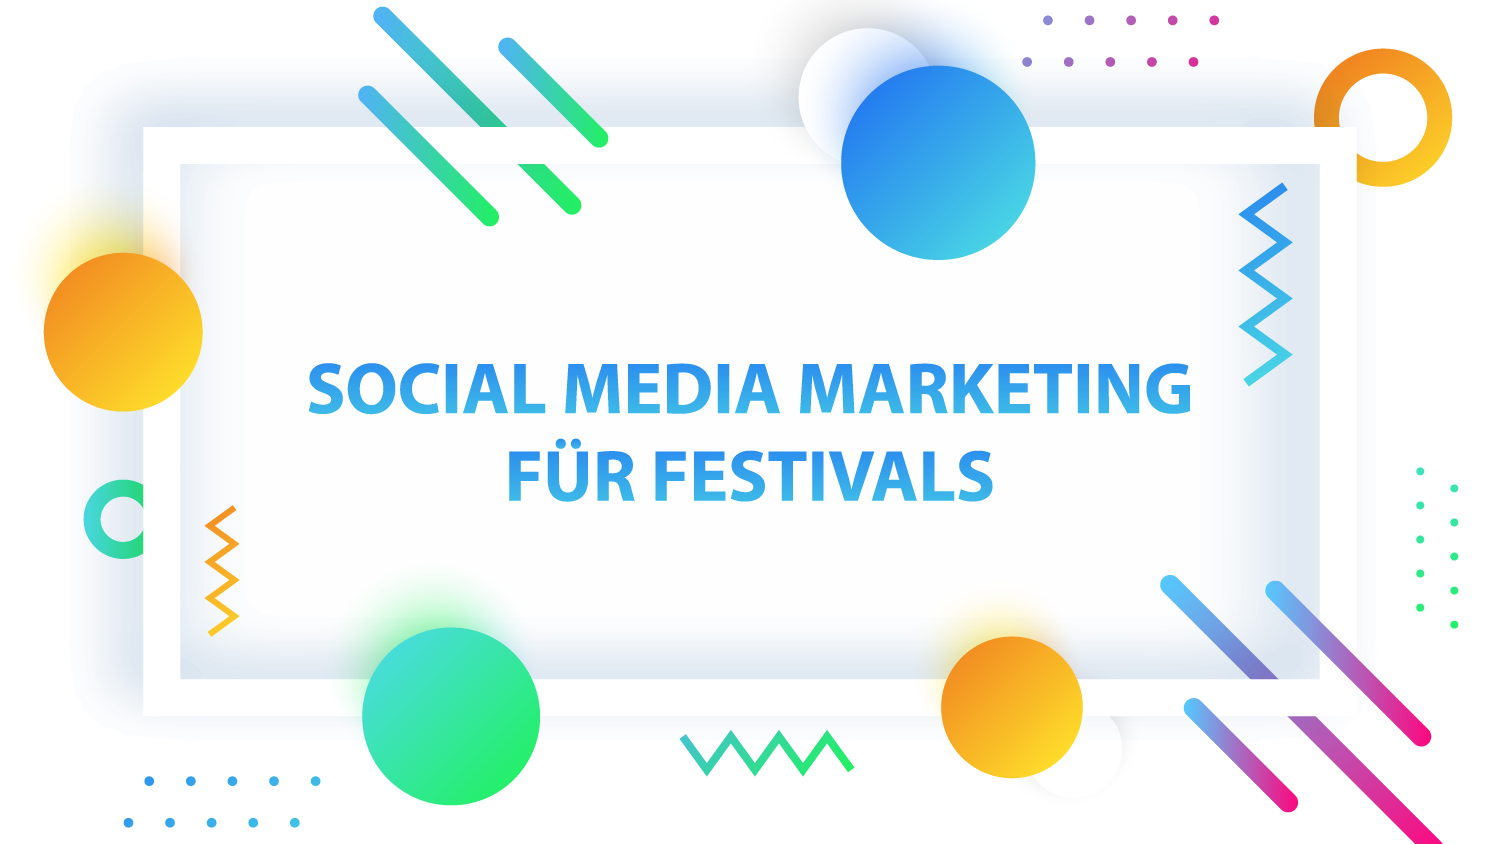 Social Media Marketing für Festivals-